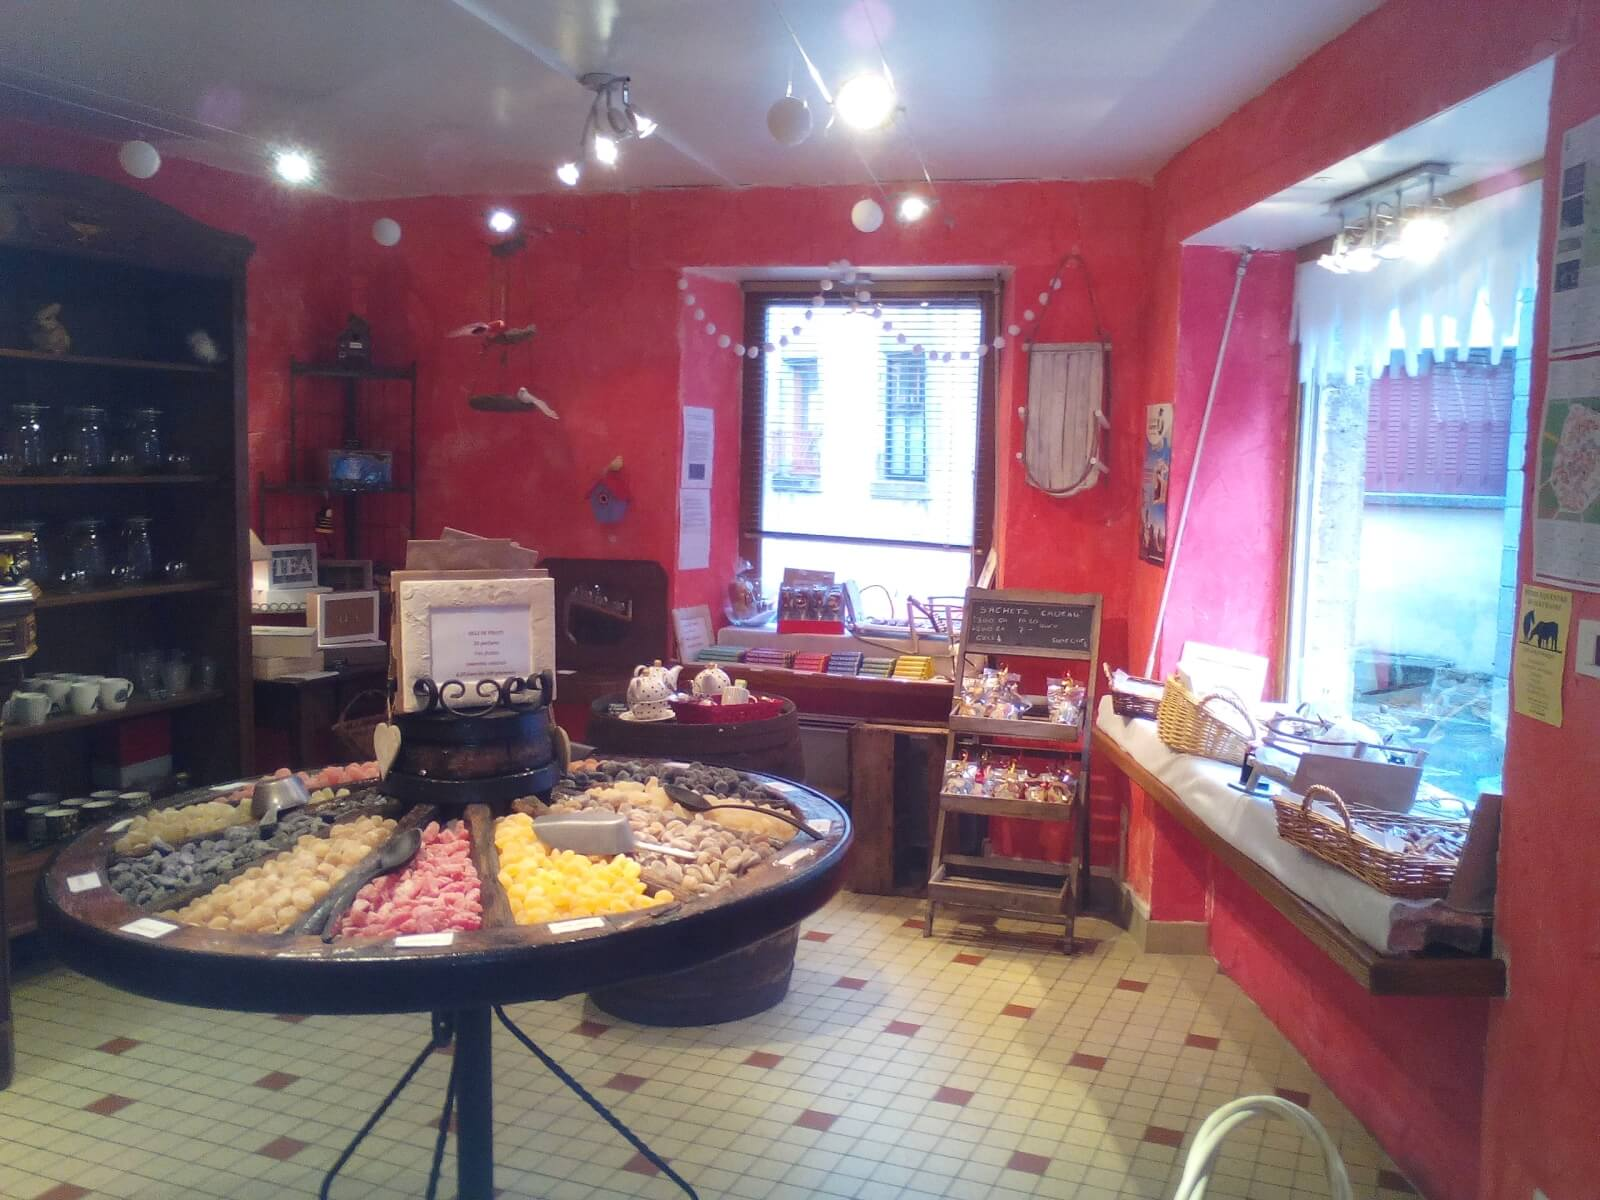 Candy store Saveurs Campagne Confiserie in Besse